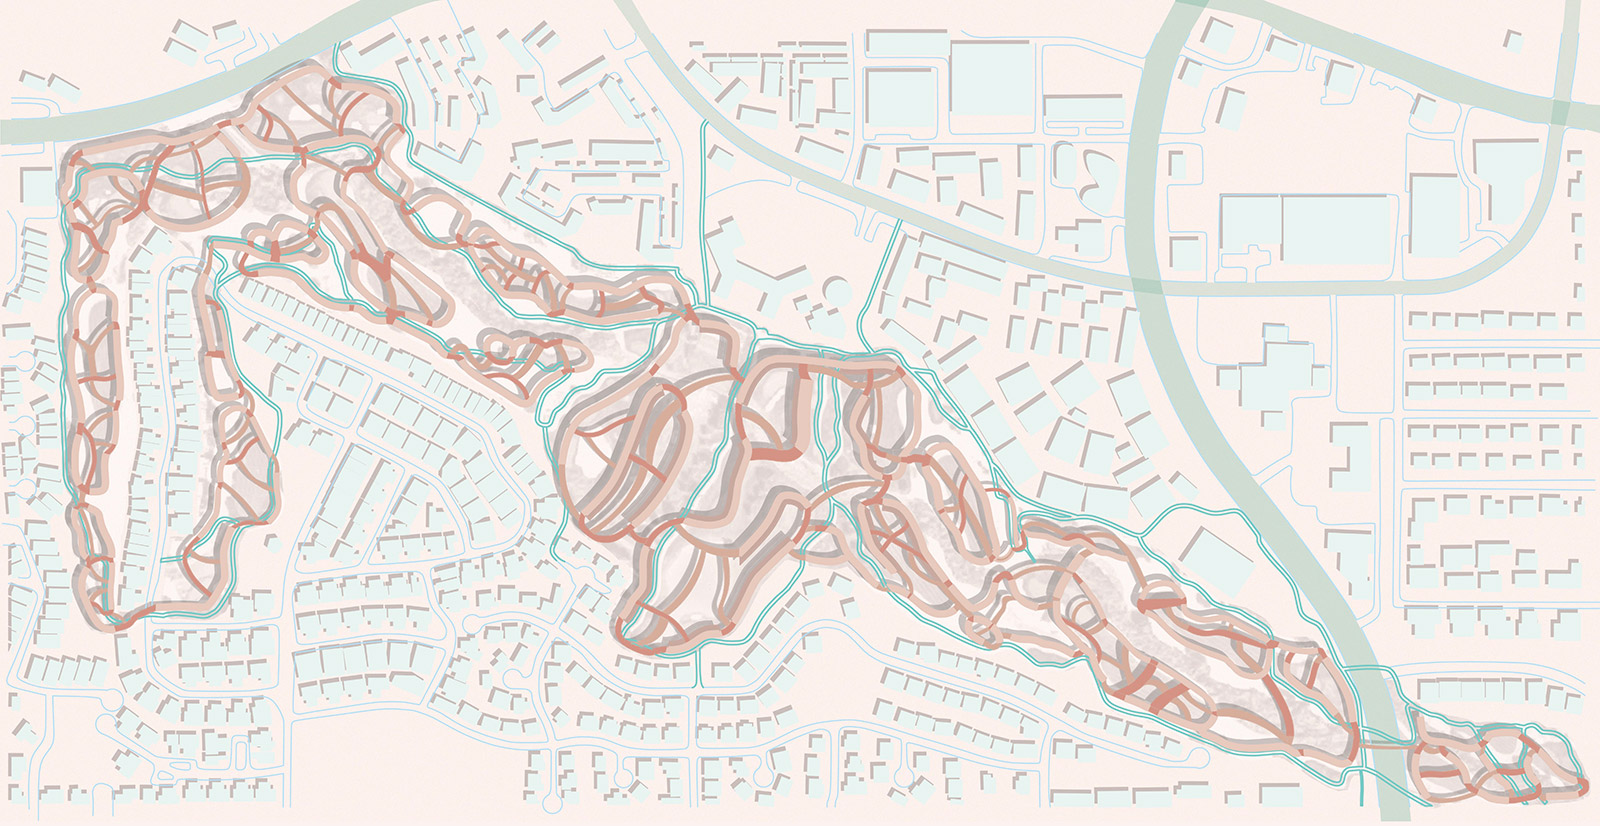 Urban plan drawing depicting the various connective housing ribbons looping between golf holes by student Adrisda Maulsi